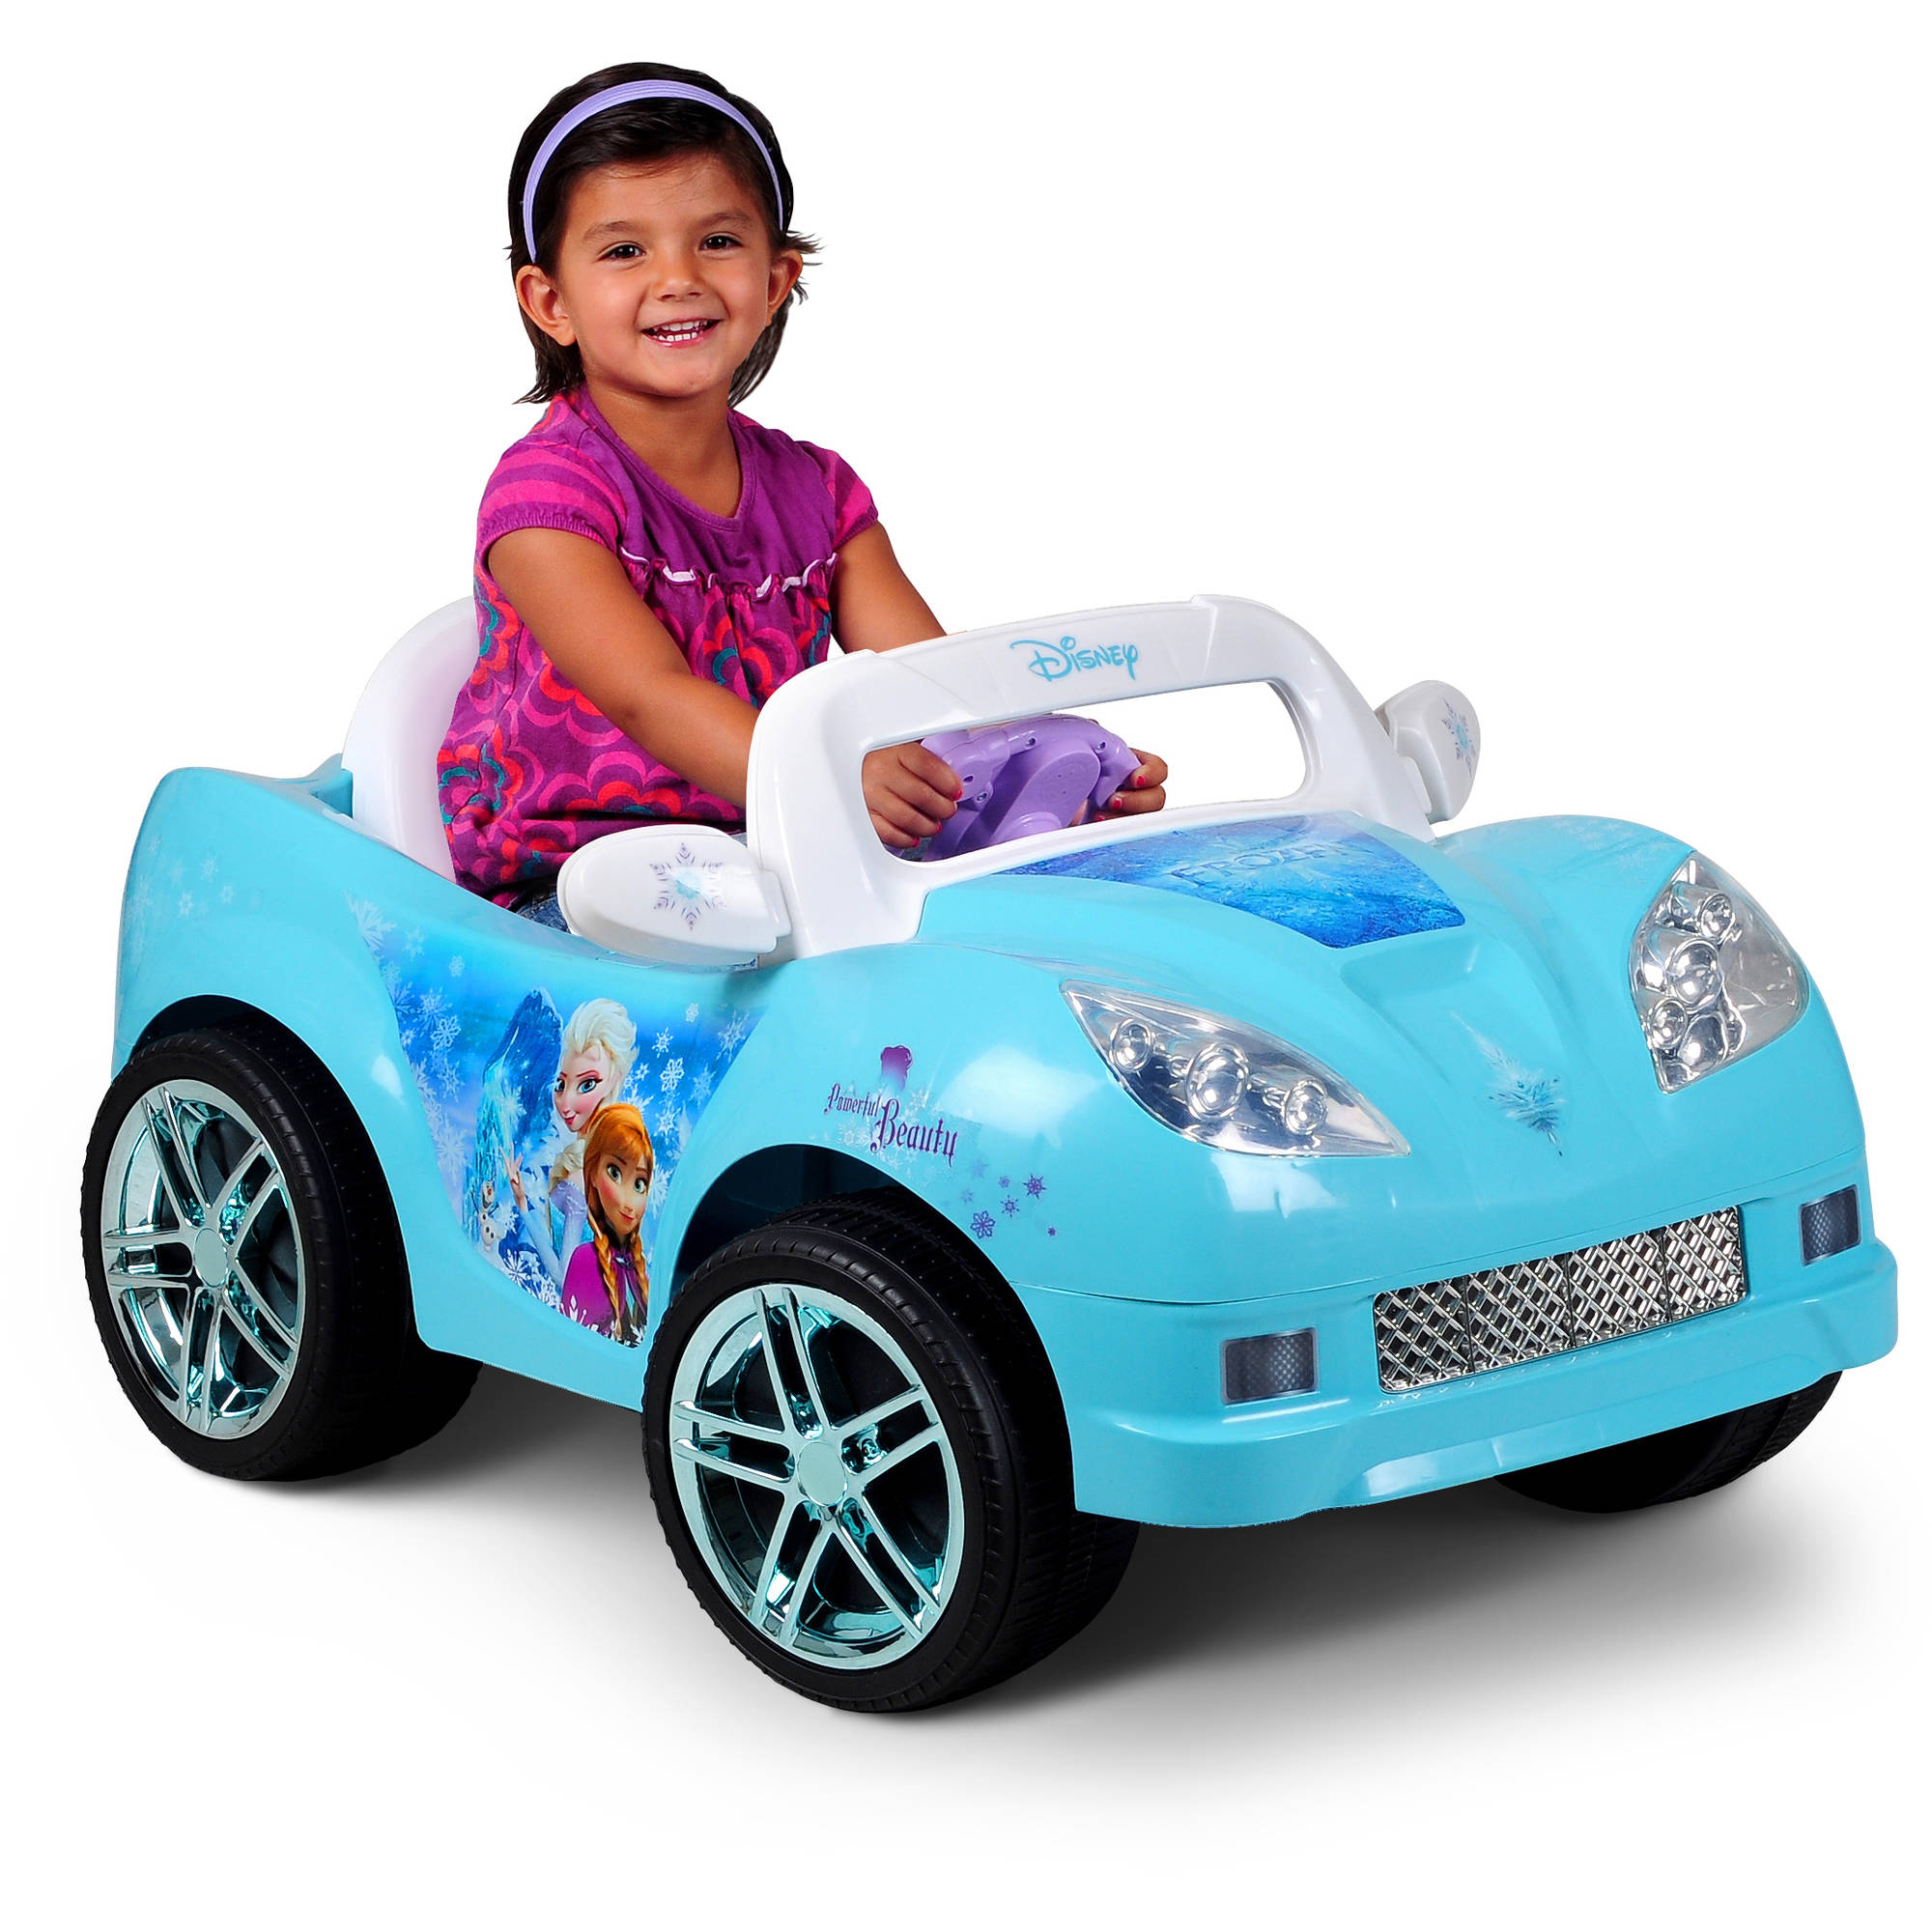 Motorized toy Car Lovely Disney Frozen Convertible Car 6 Volt Battery Powered Ride On